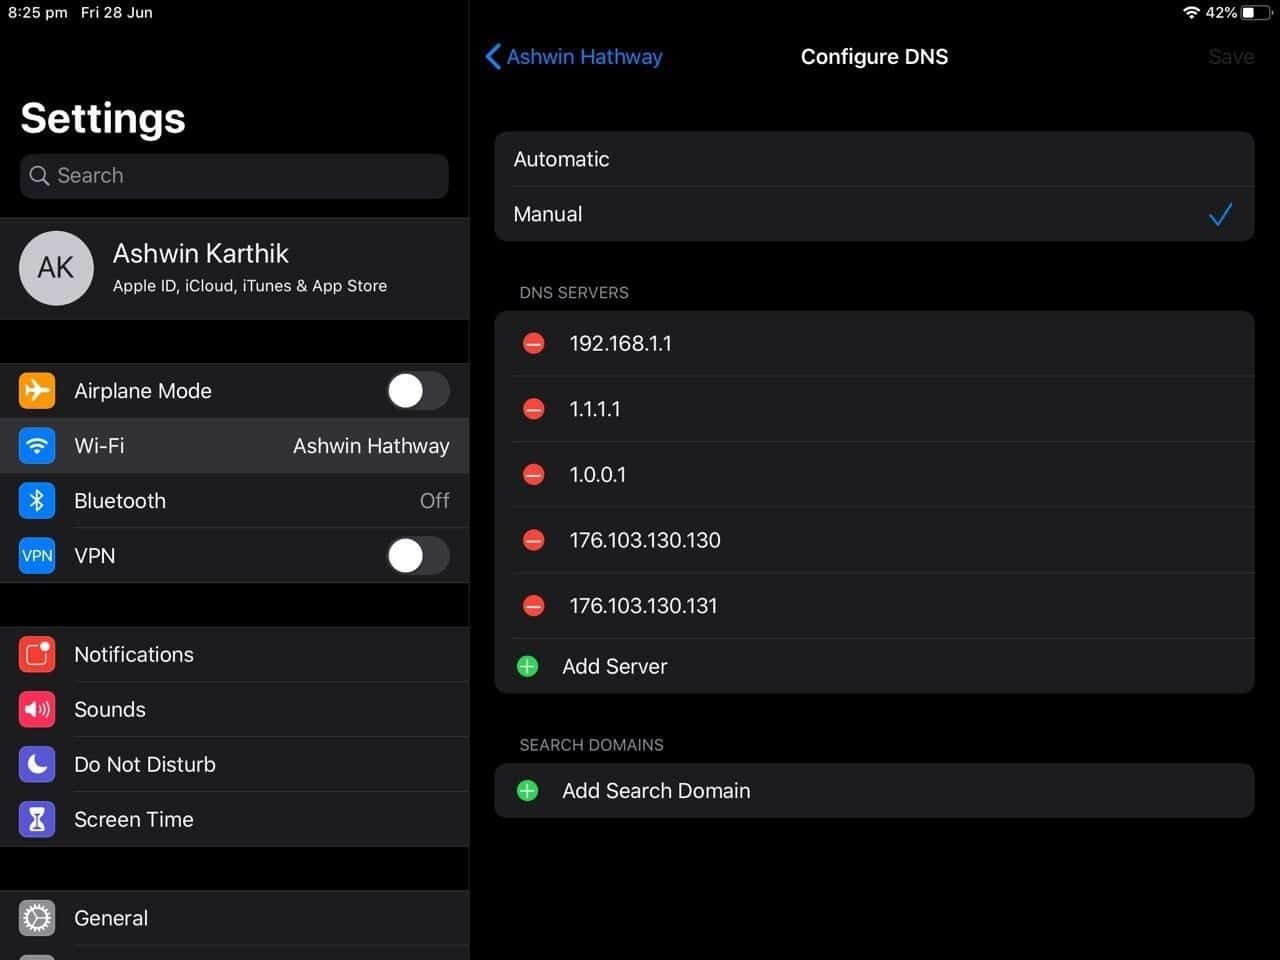 How to configure the DNS in iOS